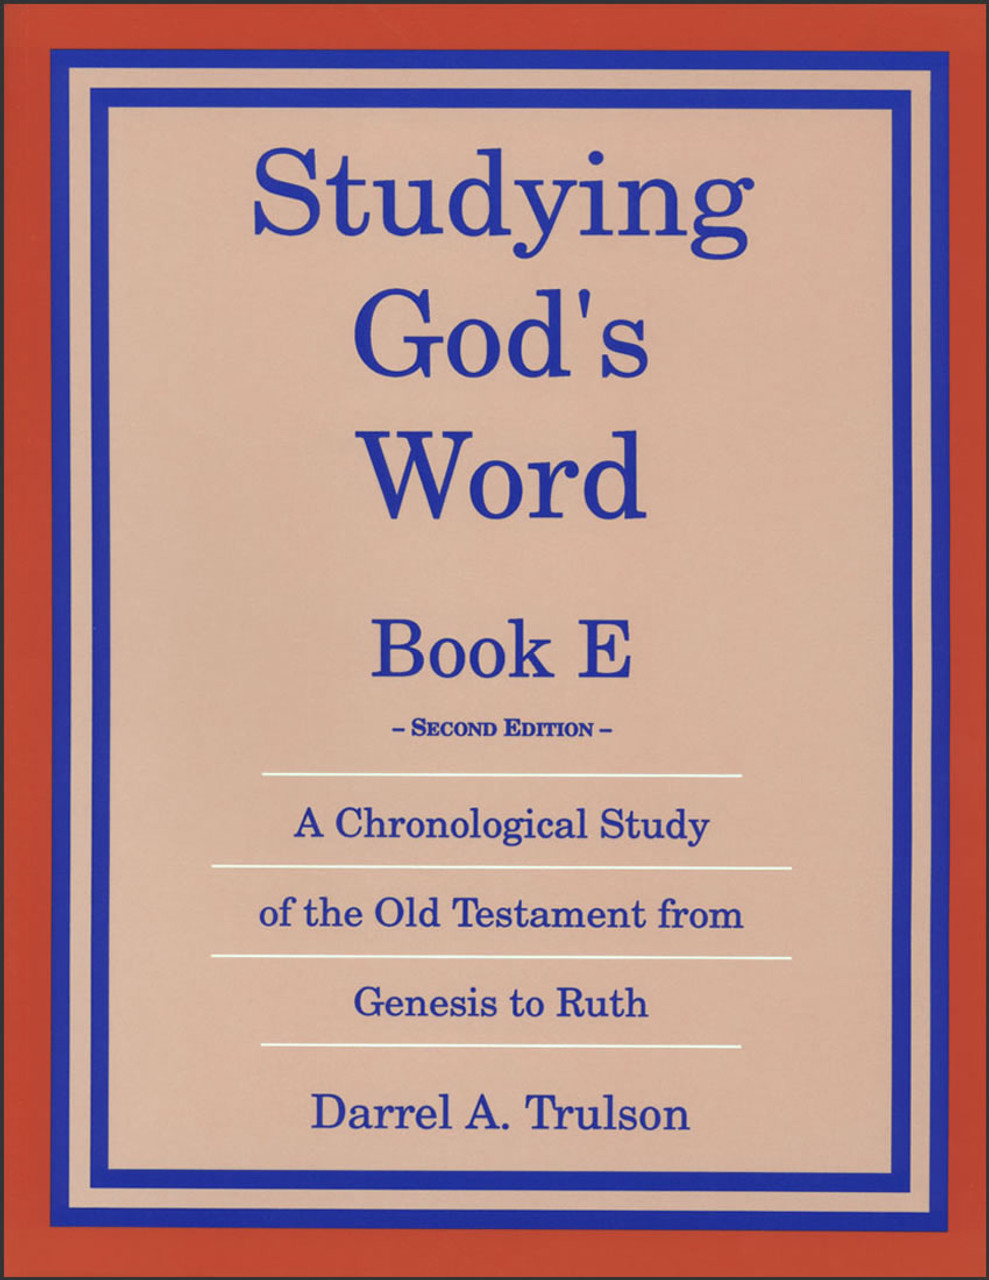 Studying God's Word Book E